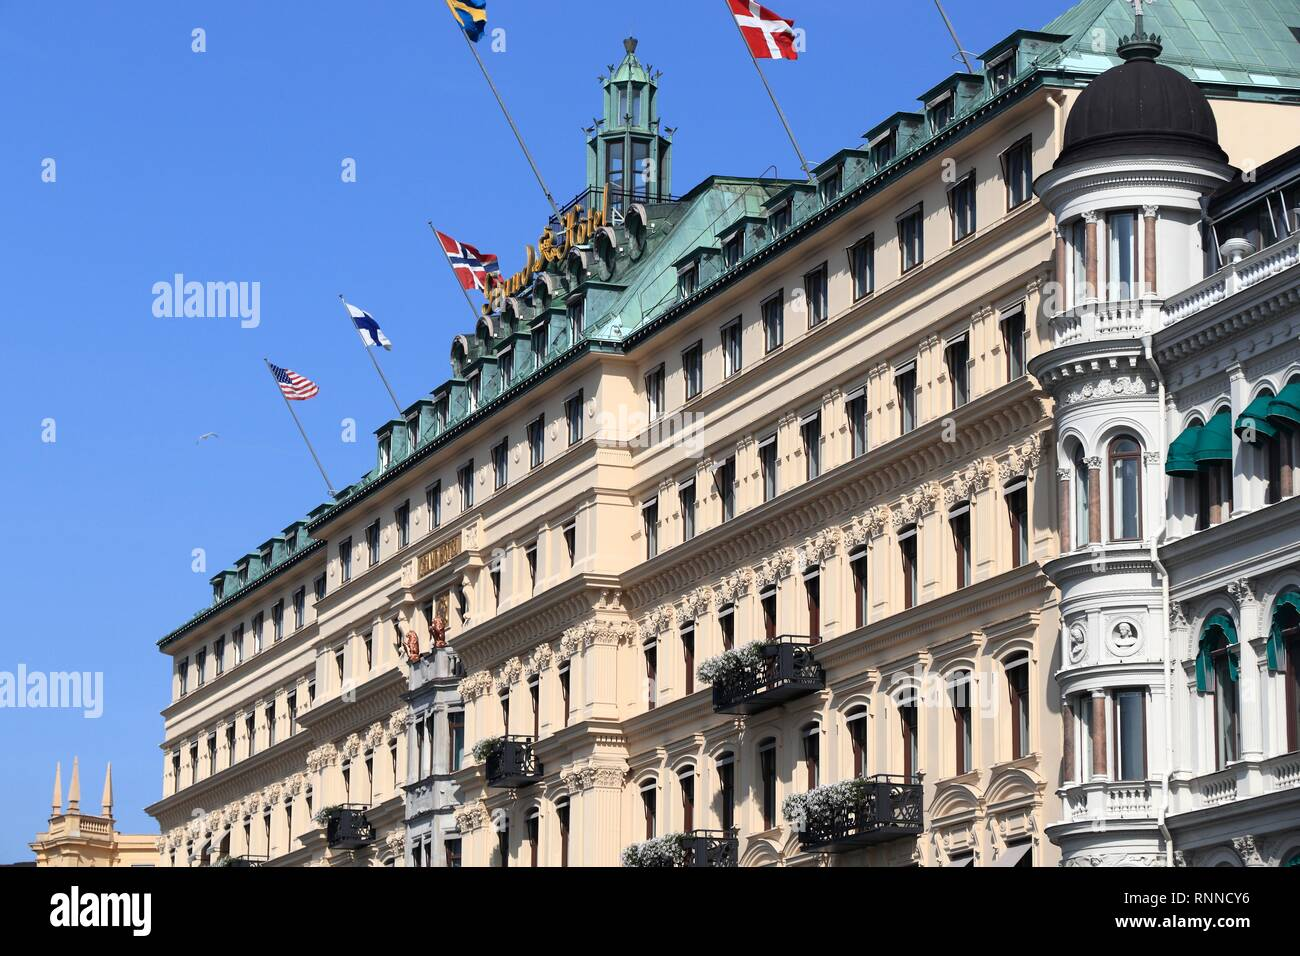 STOCKHOLM, SWEDEN - AUGUST 24, 2018: Grand Hotel in Stockholm, Sweden. It is a member of prestigious The Leading Hotels of the World (LHW) consortium. - Stock Image